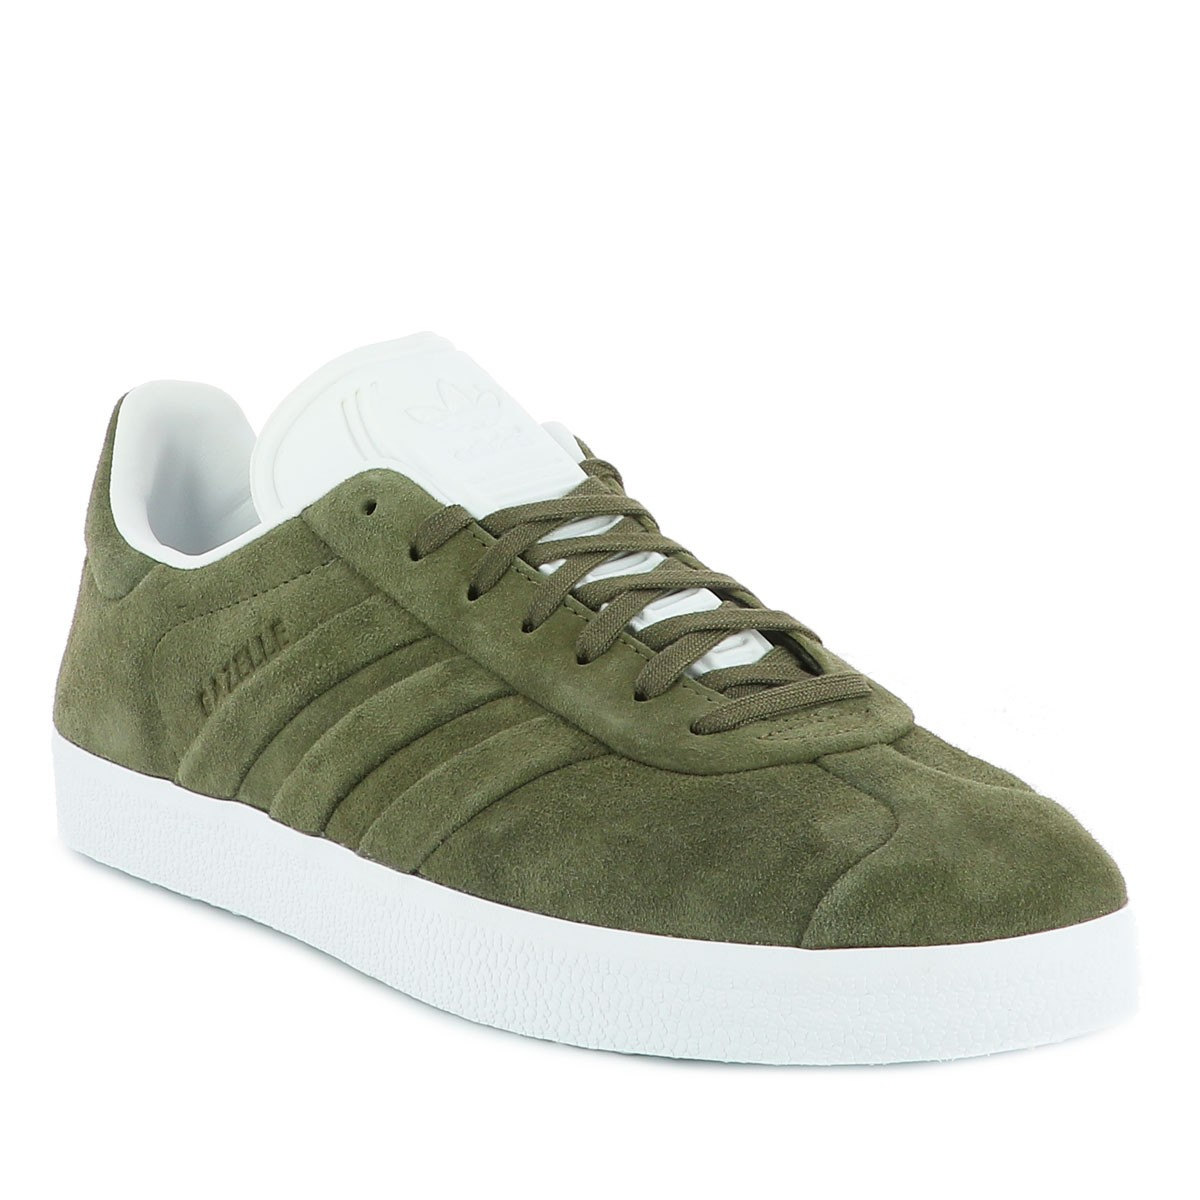 ADIDAS ORIGINALS Baskets Gazelle Stitch and Turn femme vert